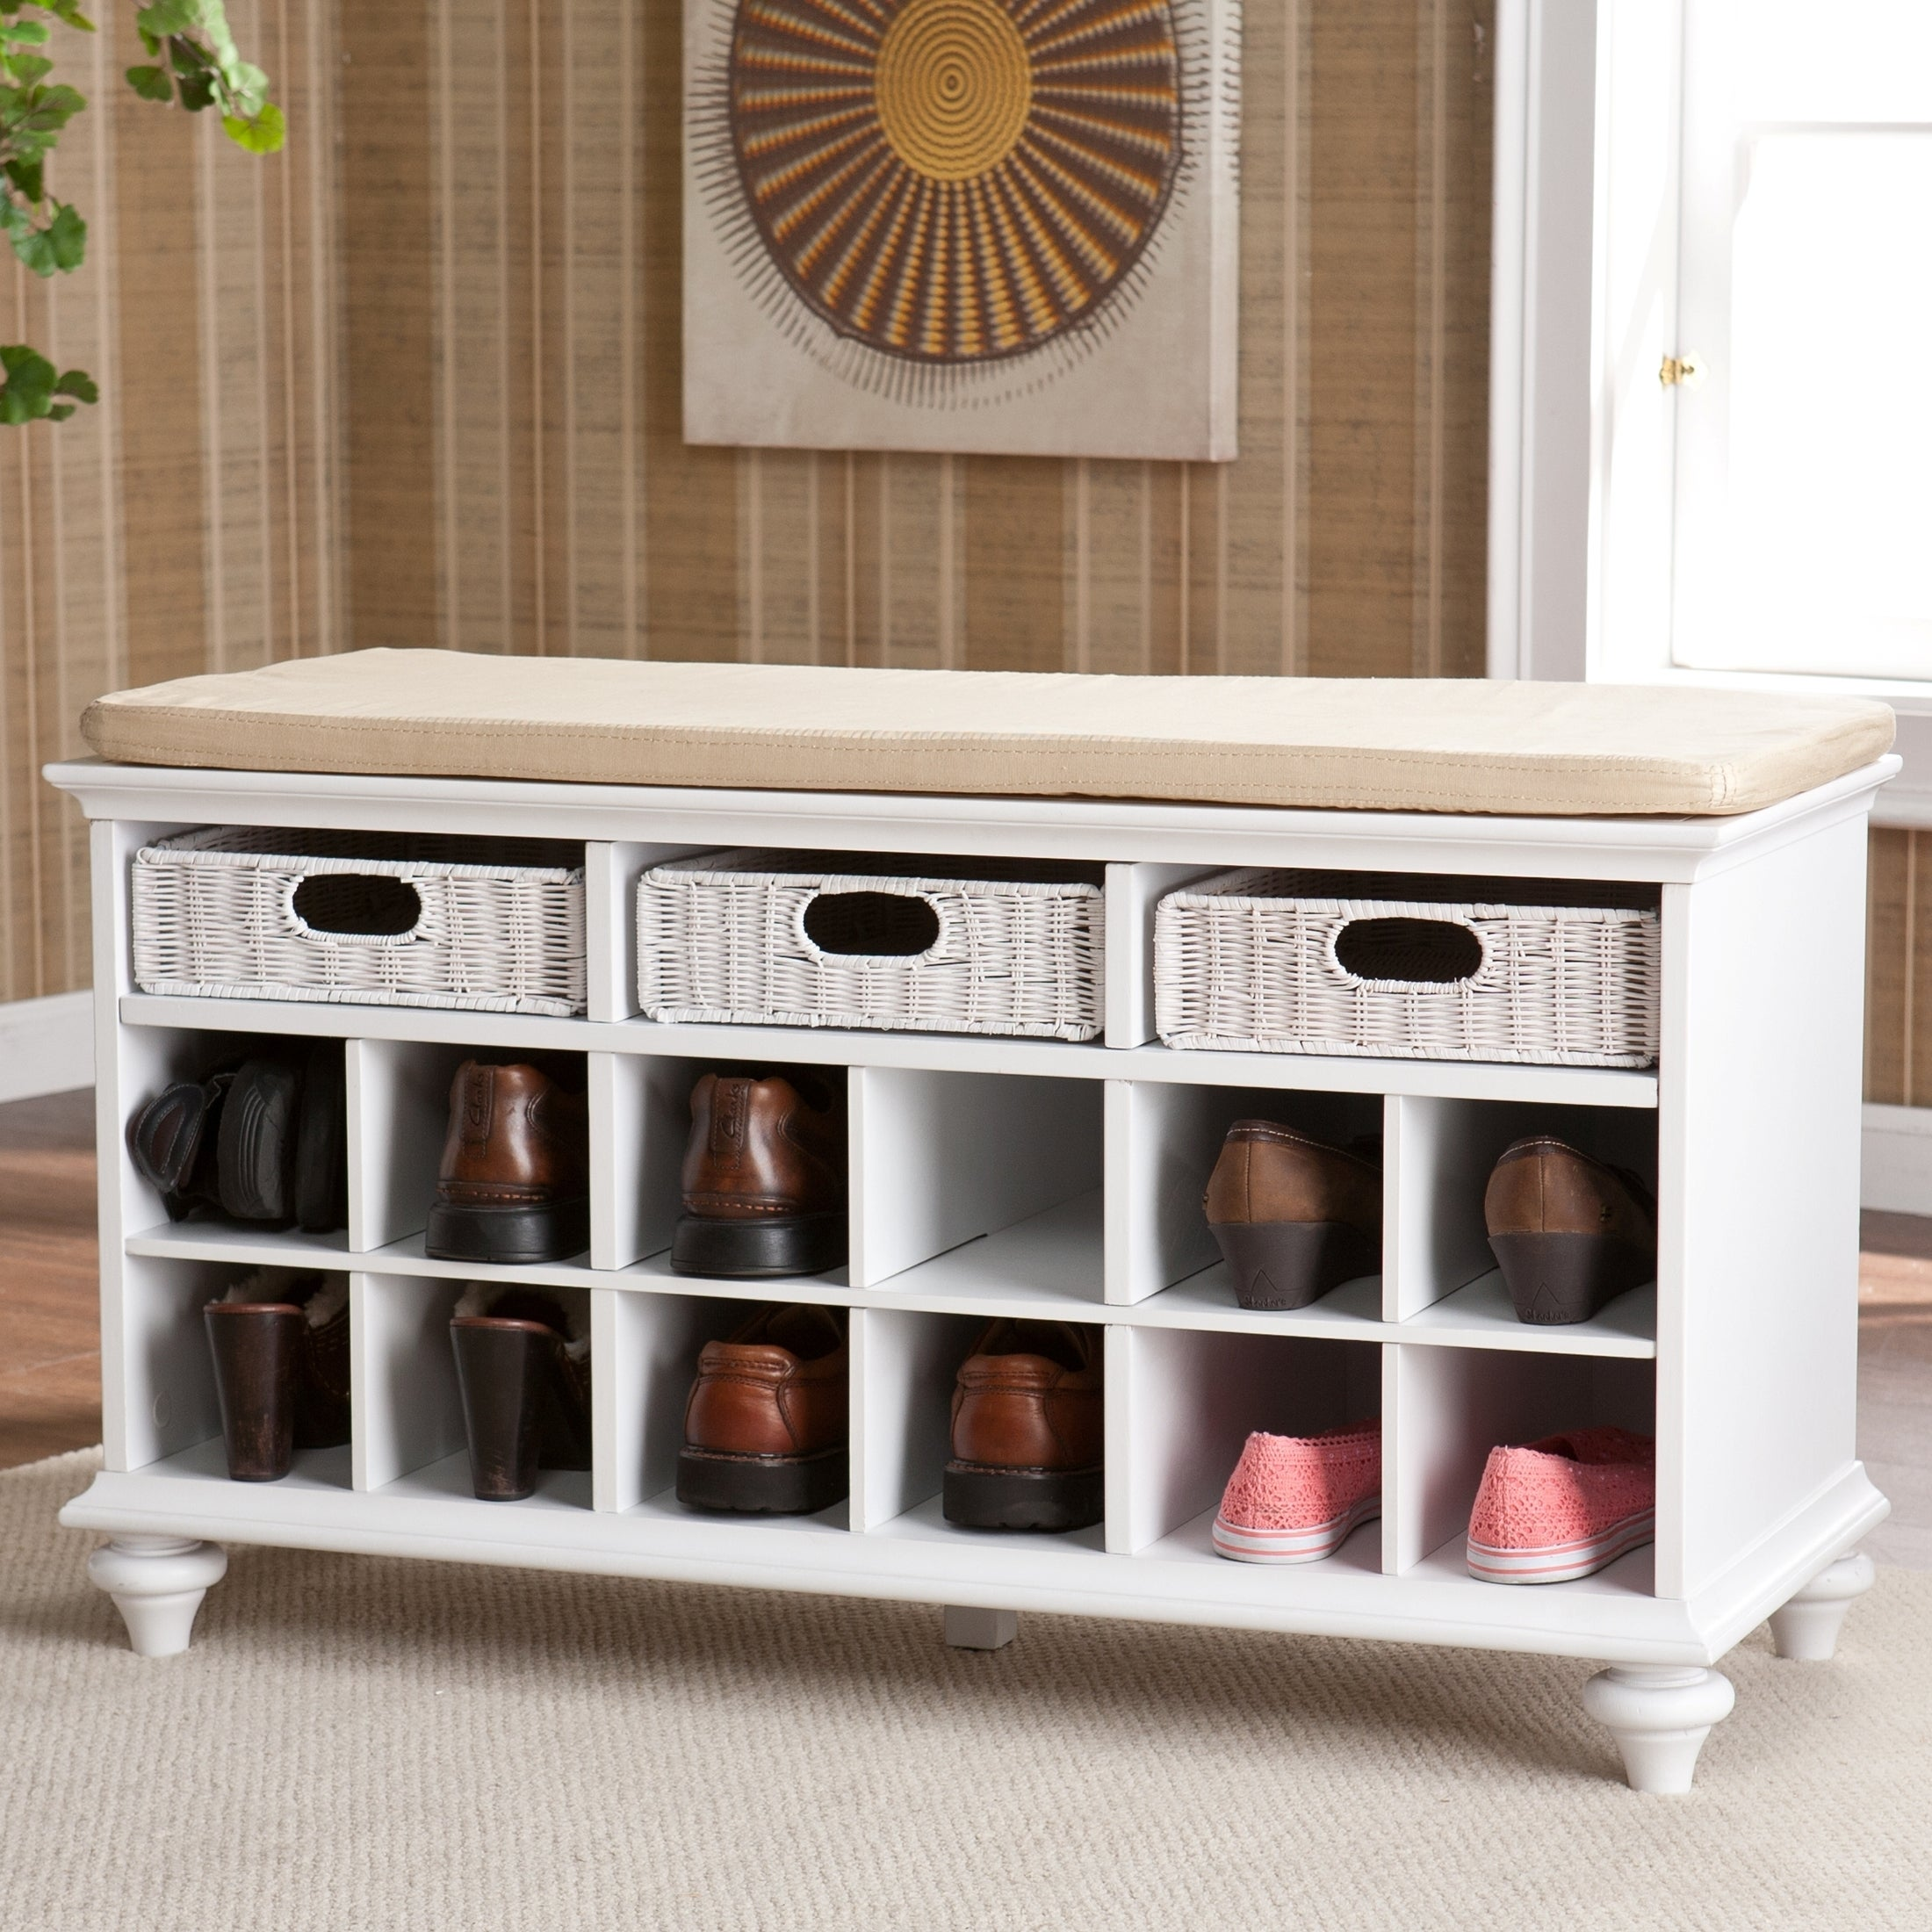 Shop Copper Grove Guillermo White Entryway Bench With Shoe Storage Overstock 23122762,Diy Christmas Decorations For Your Room